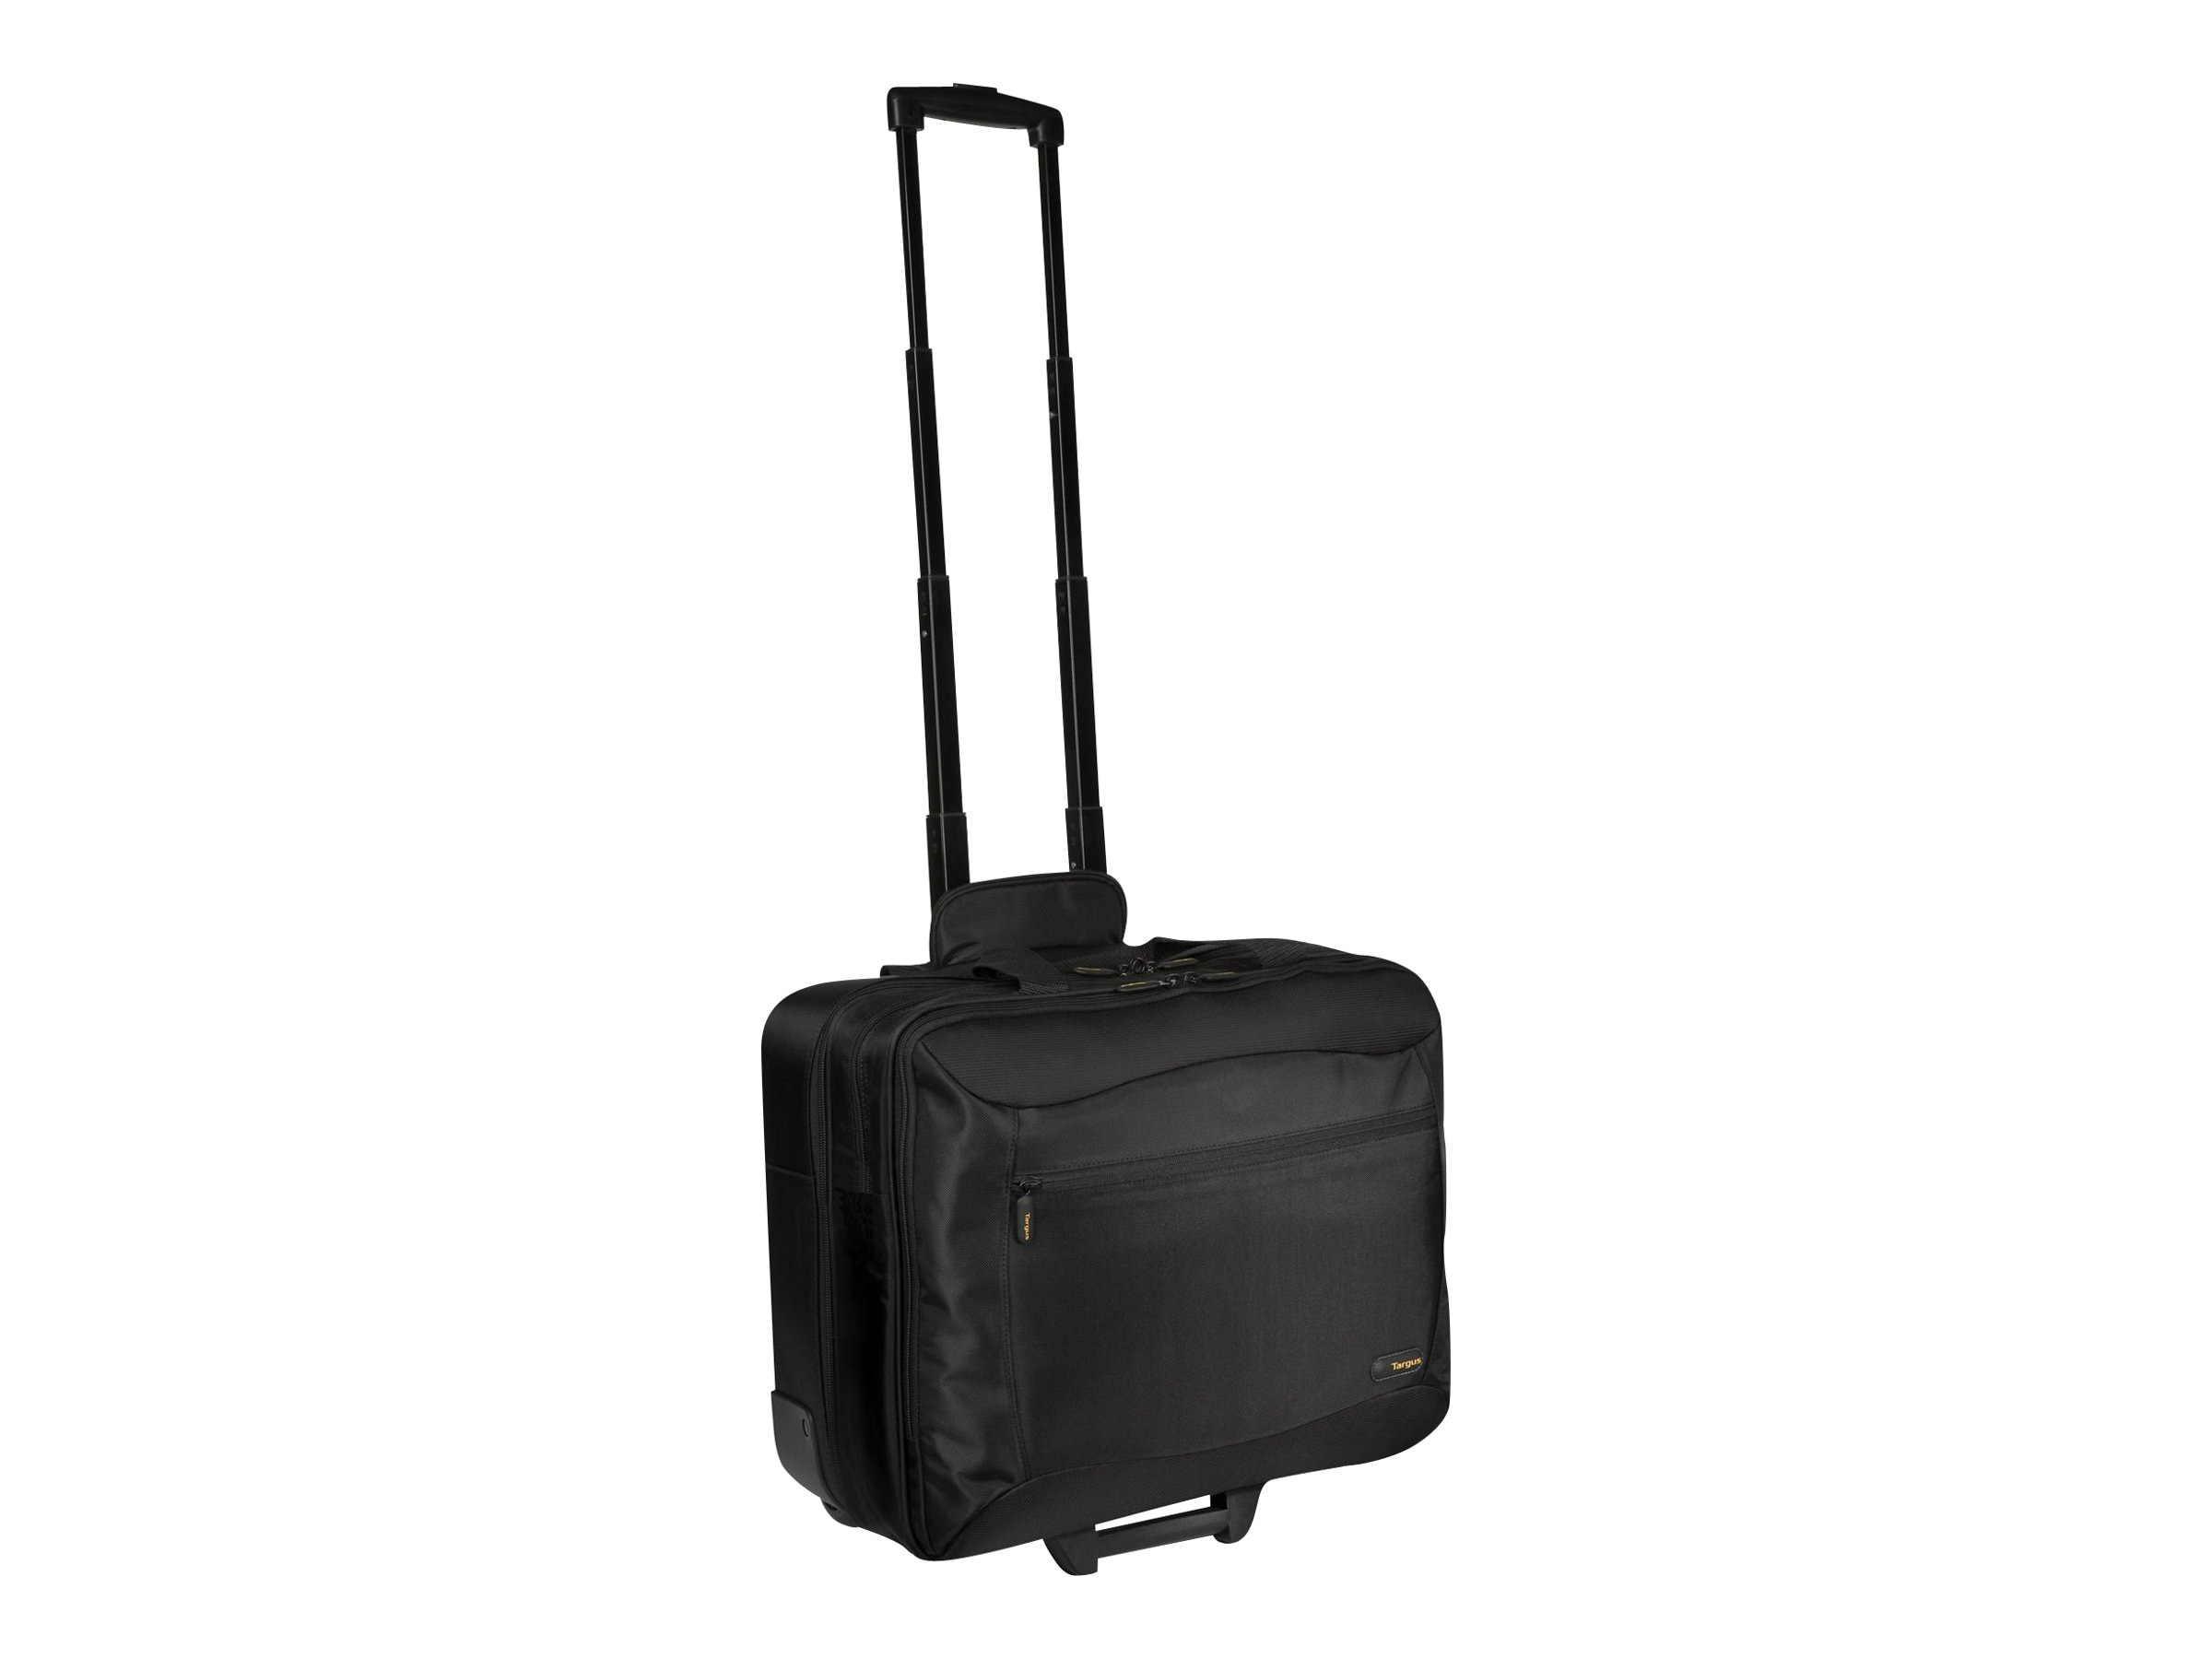 Targus 17 Rolling Travel Notebook Case, Black, 840D Nylon, TCG717